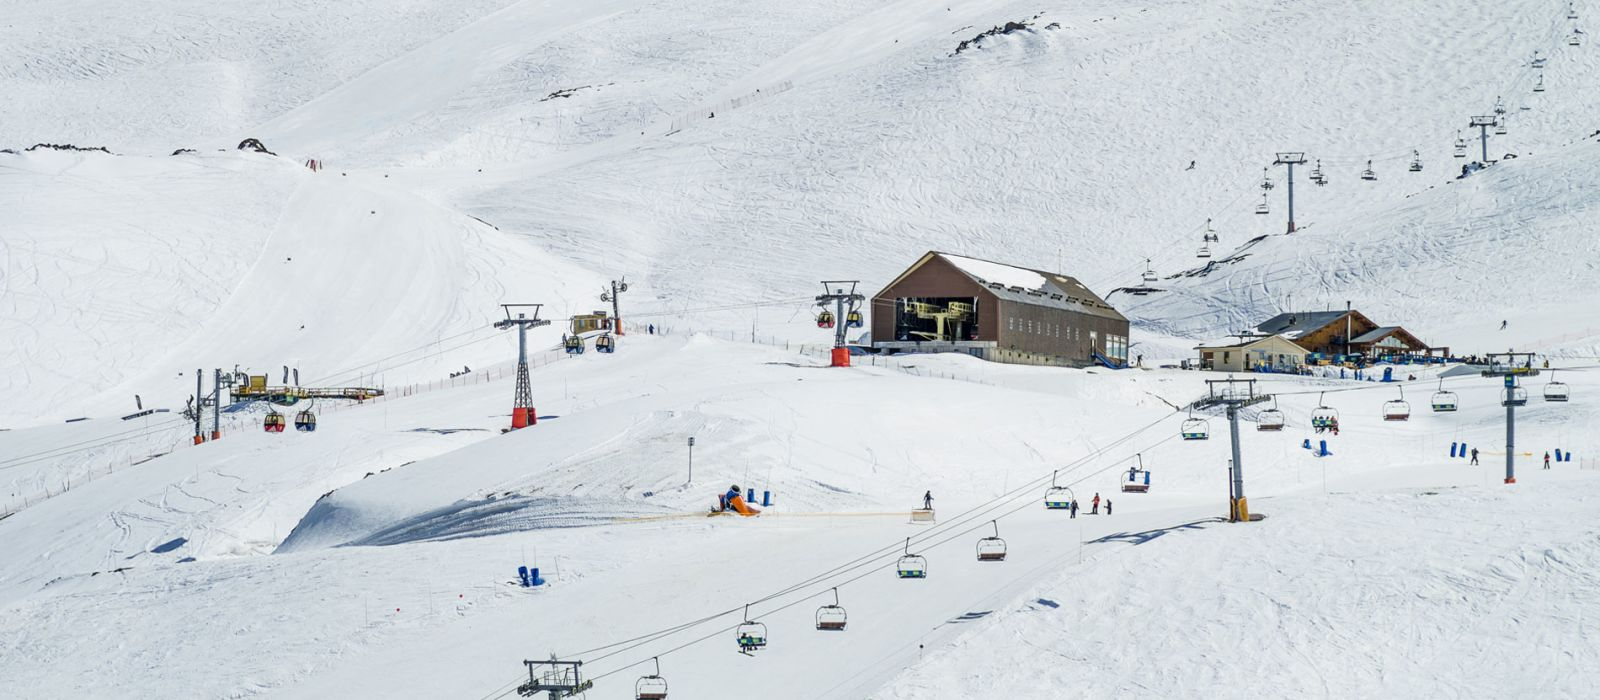 Destination Valle Nevado Chile